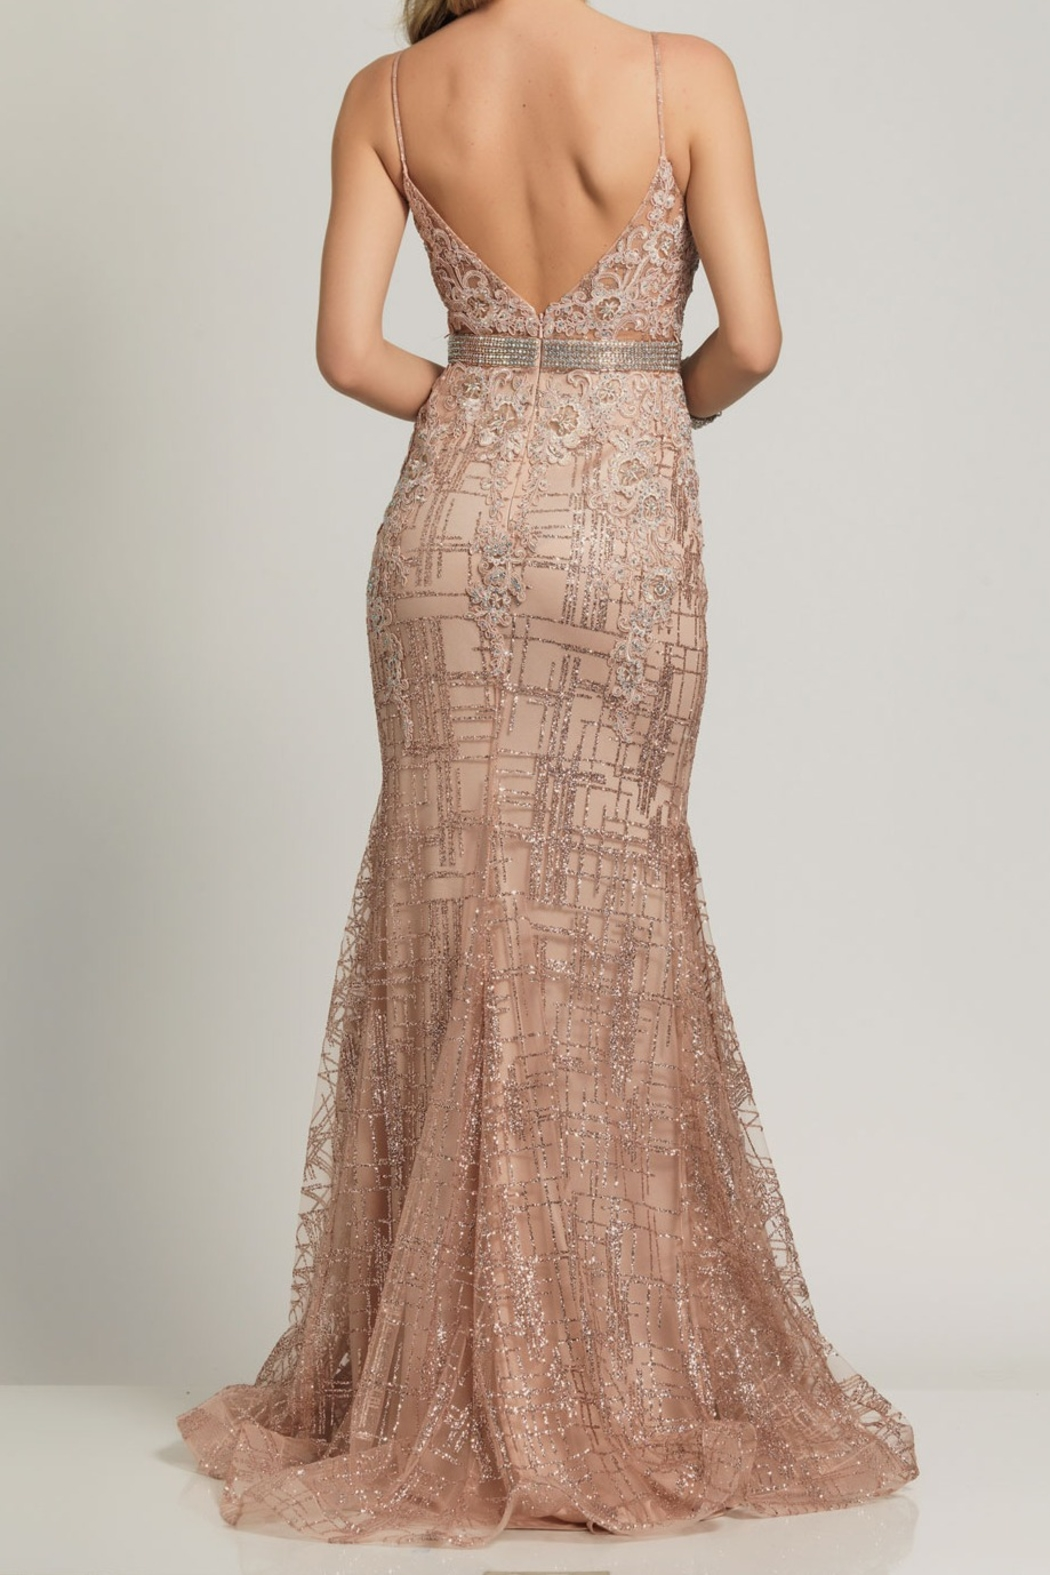 Dave and Johnny Embellished Deep V Gown - Main Image